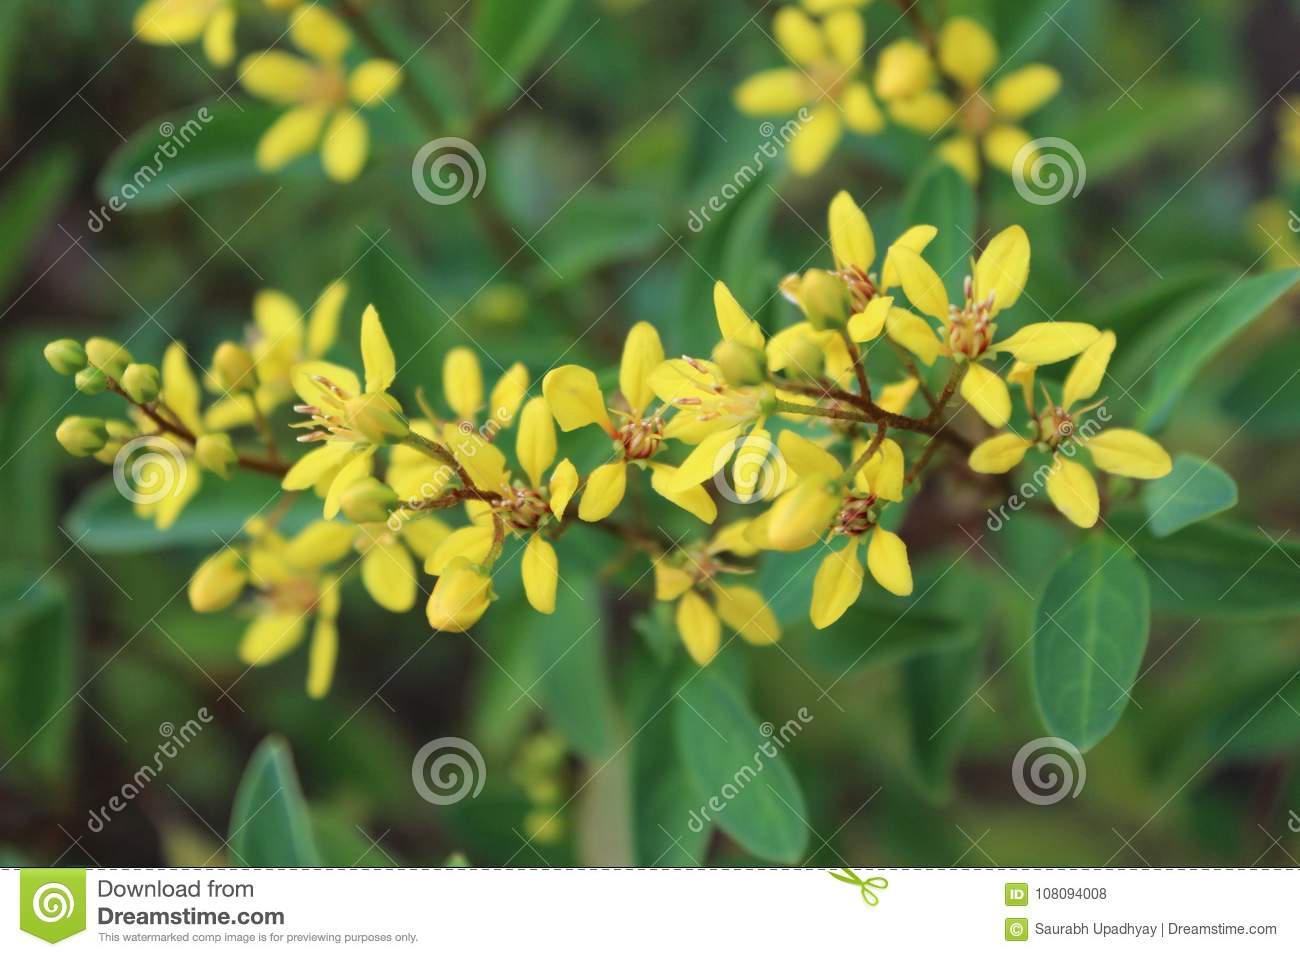 Beautiful yellow flower in garden with leaf stock photo image of beautiful yellow flower in garden with leaf izmirmasajfo